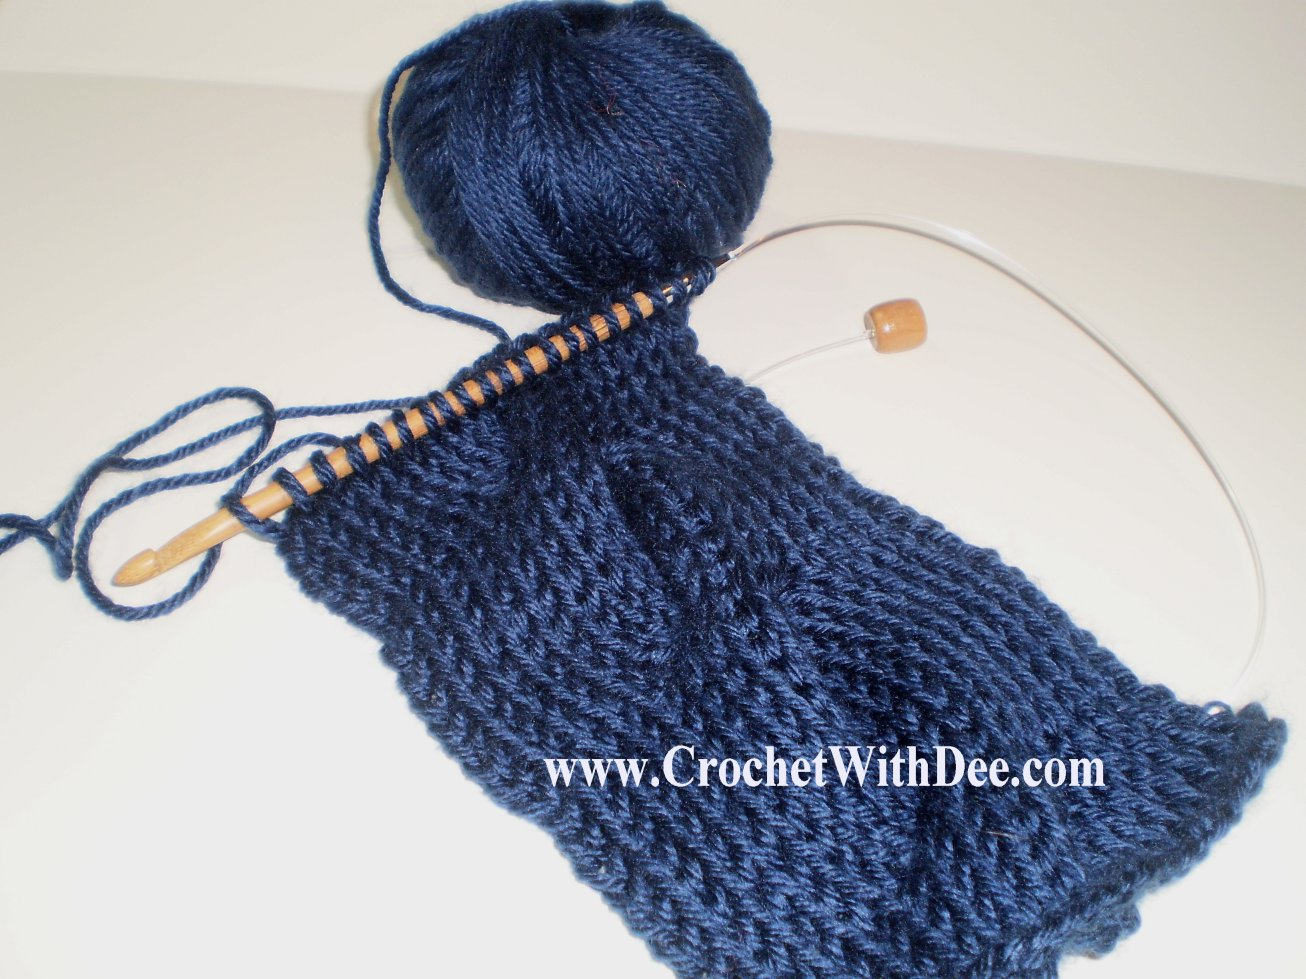 Crochet Classes : CrochetingWithDee.com: 60/60 leads to taking a crochet class